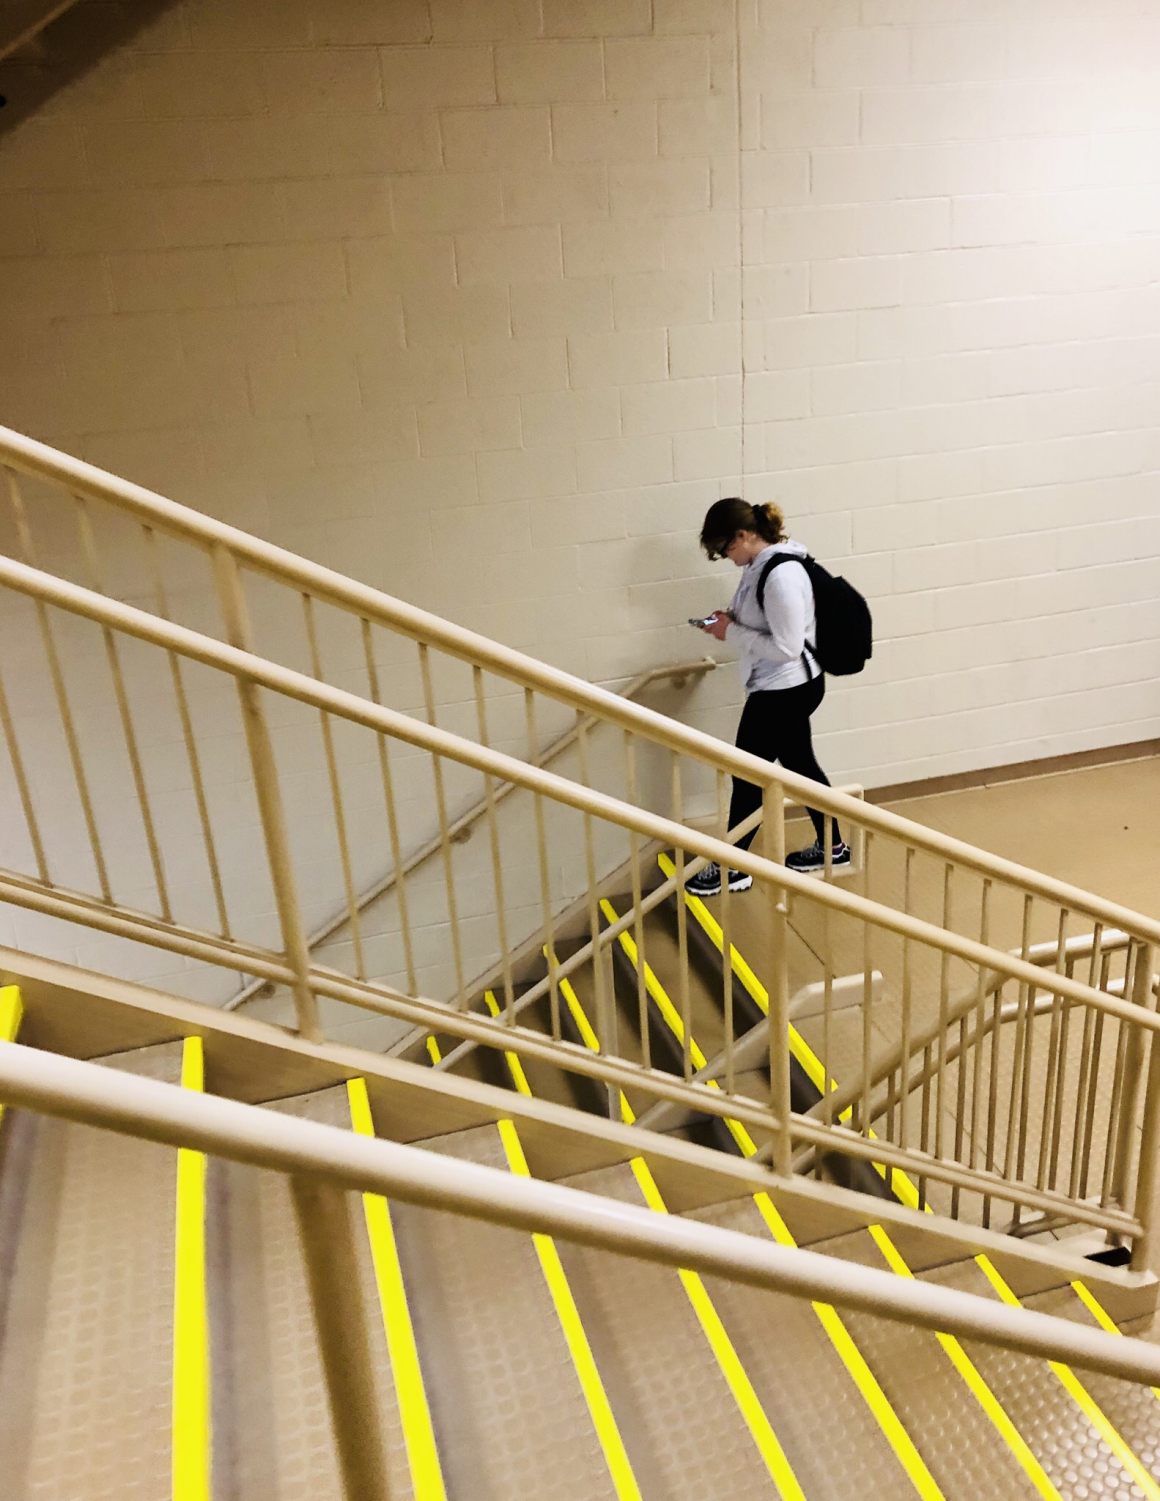 A Monroe-Woodbury High School student gazes intently at her phone as she walks down the stairs. Students are frequently seen so engaged in their electronics that they bump into others or trip while walking to their next class in the hallways of MWHS.